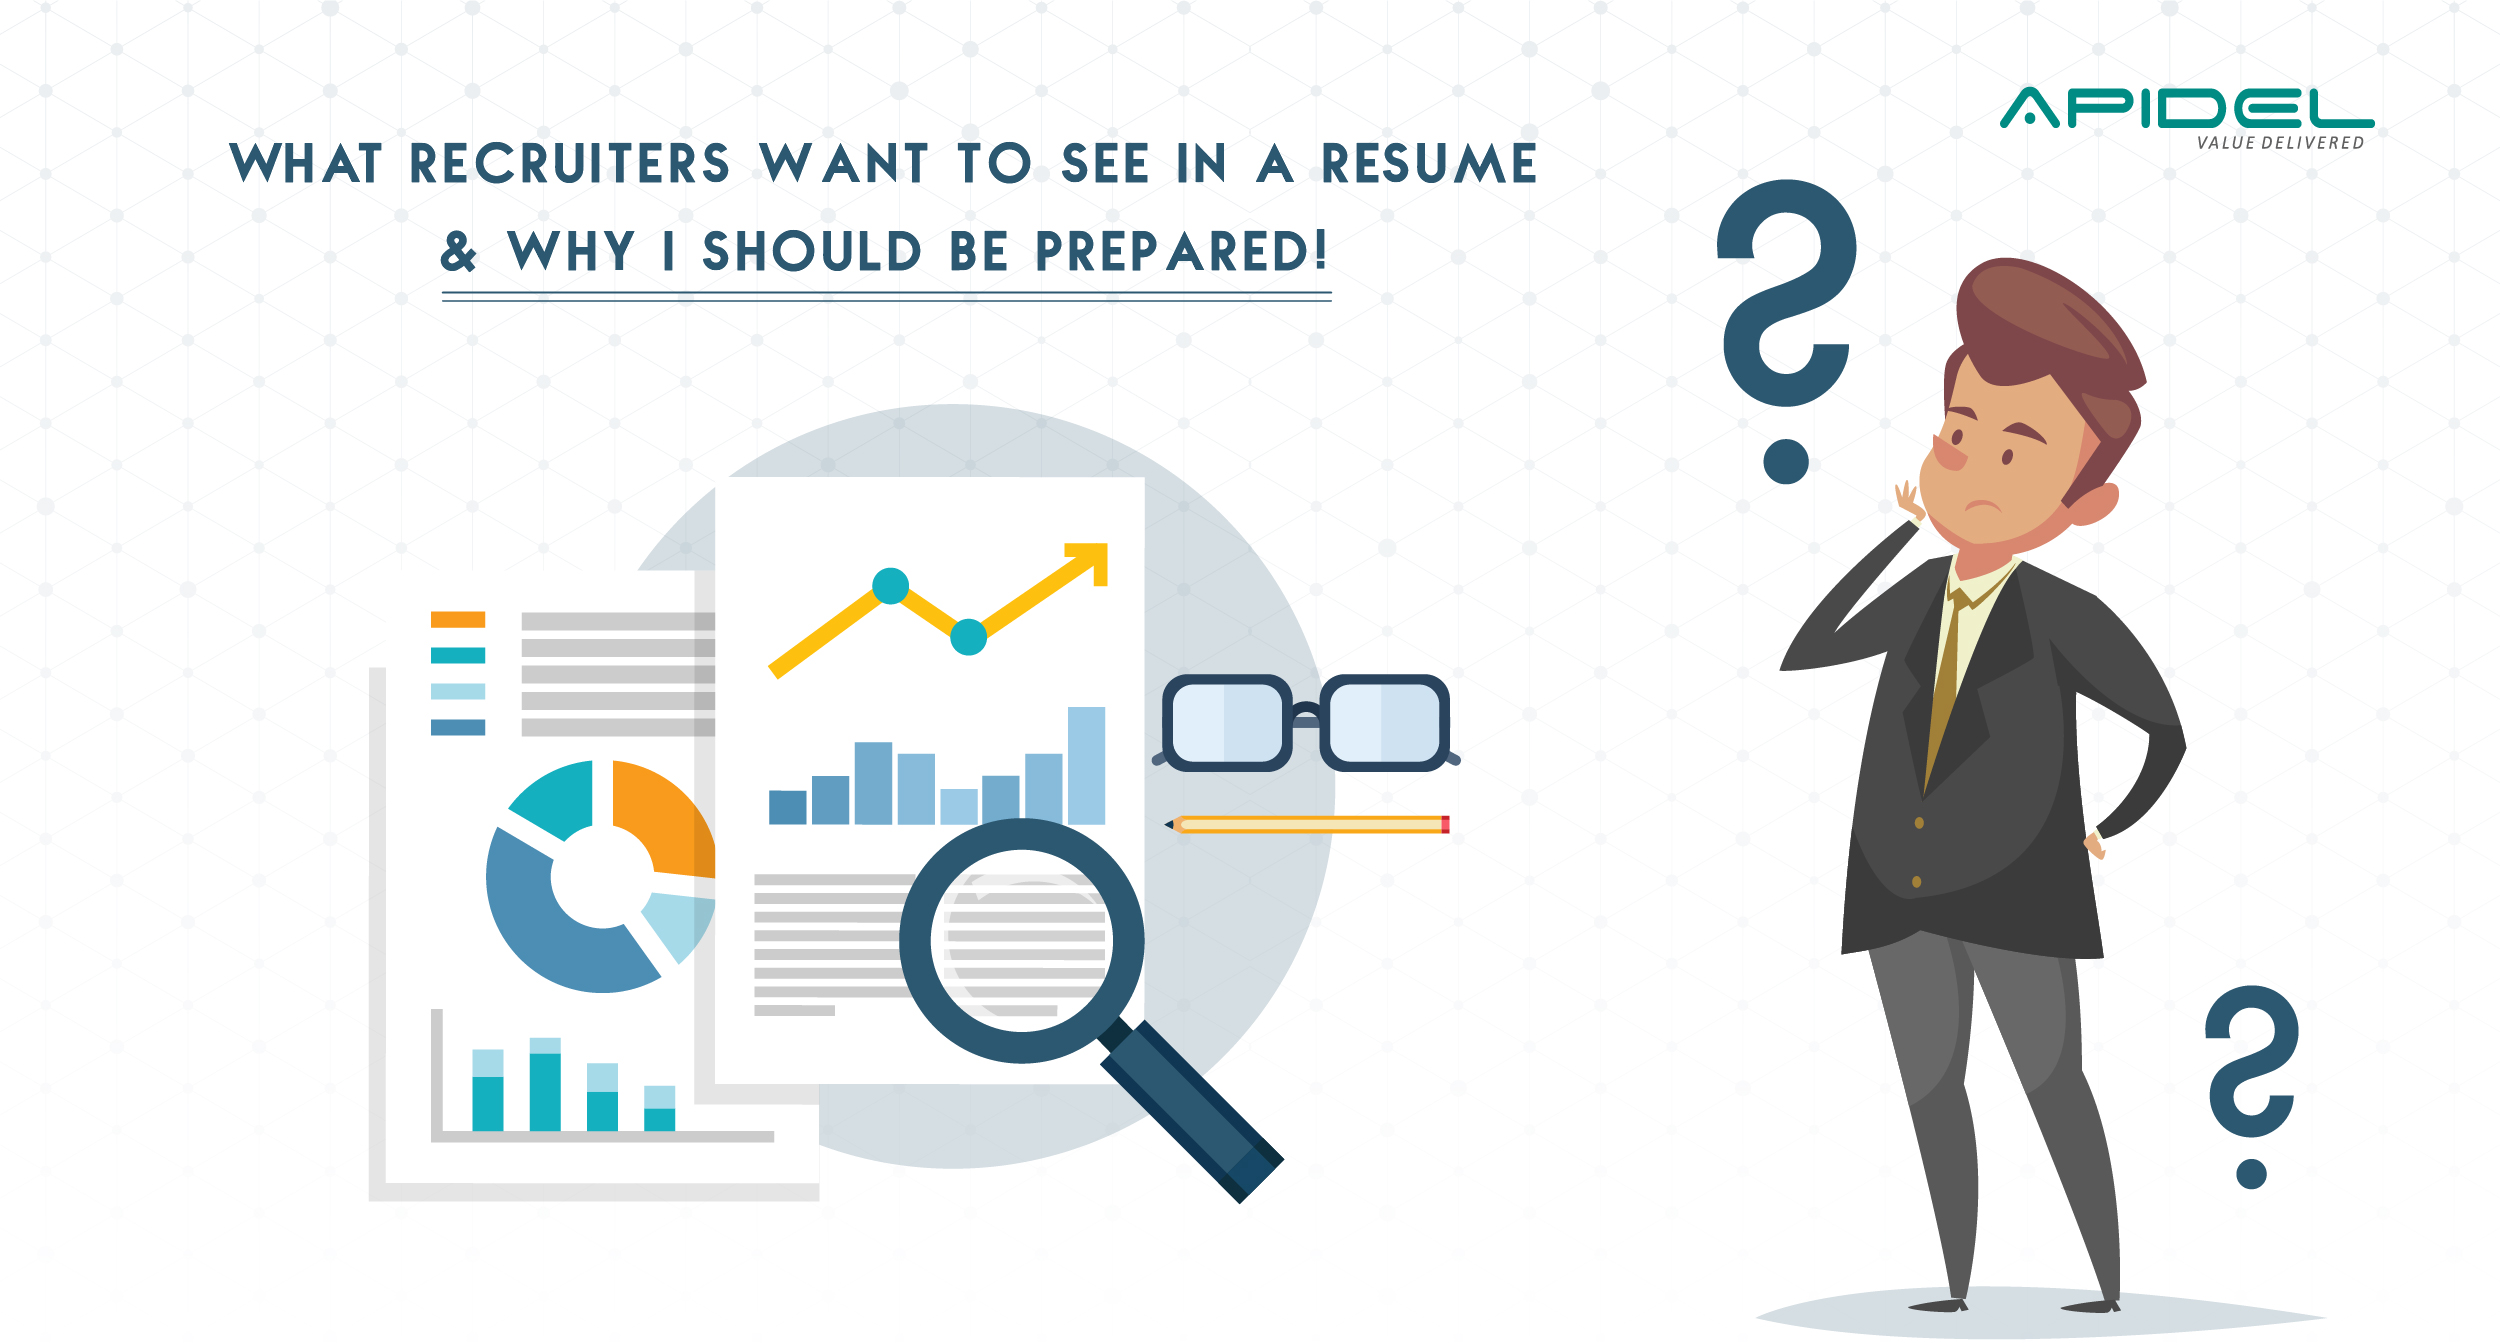 recruiters want your resume to be on their watch list how should you